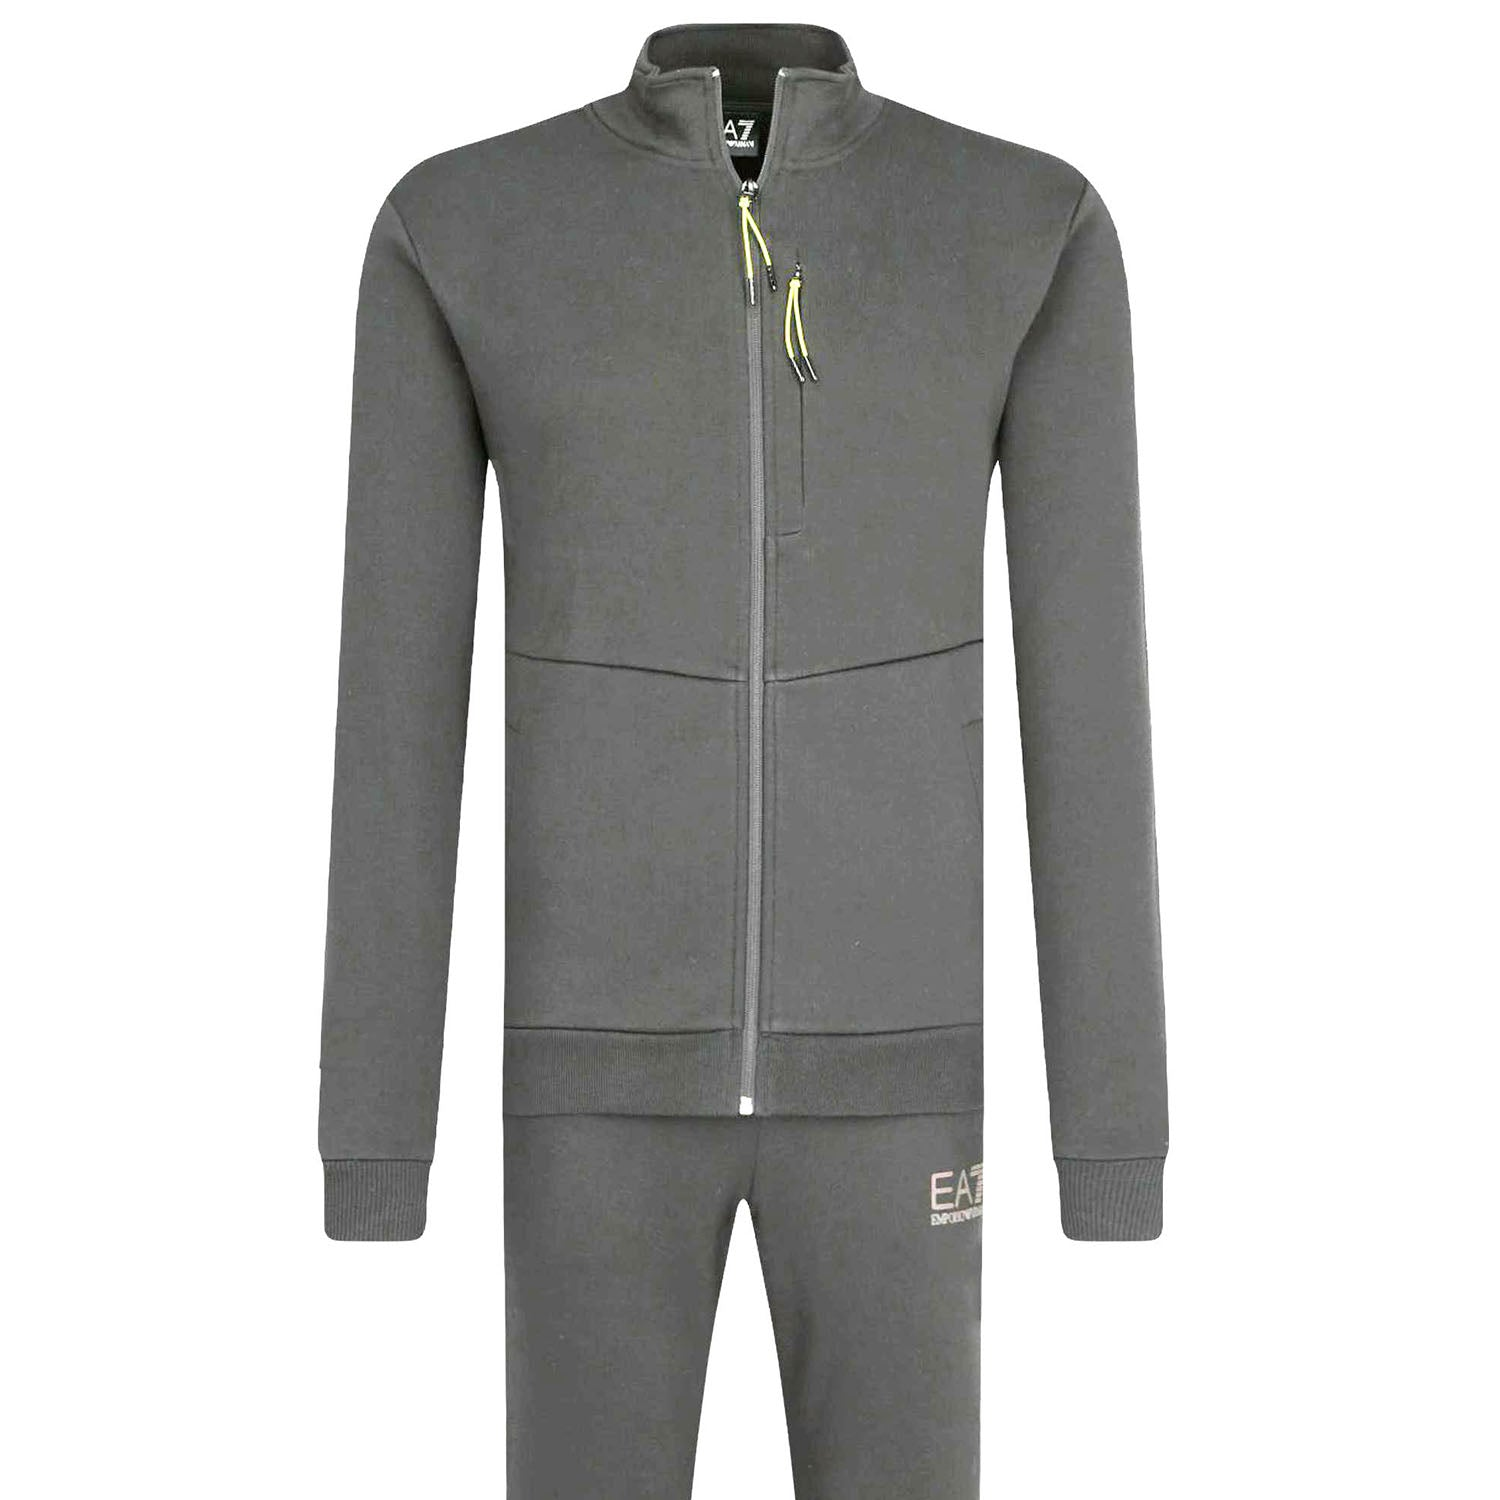 EA7 Regular fit Tracksuit